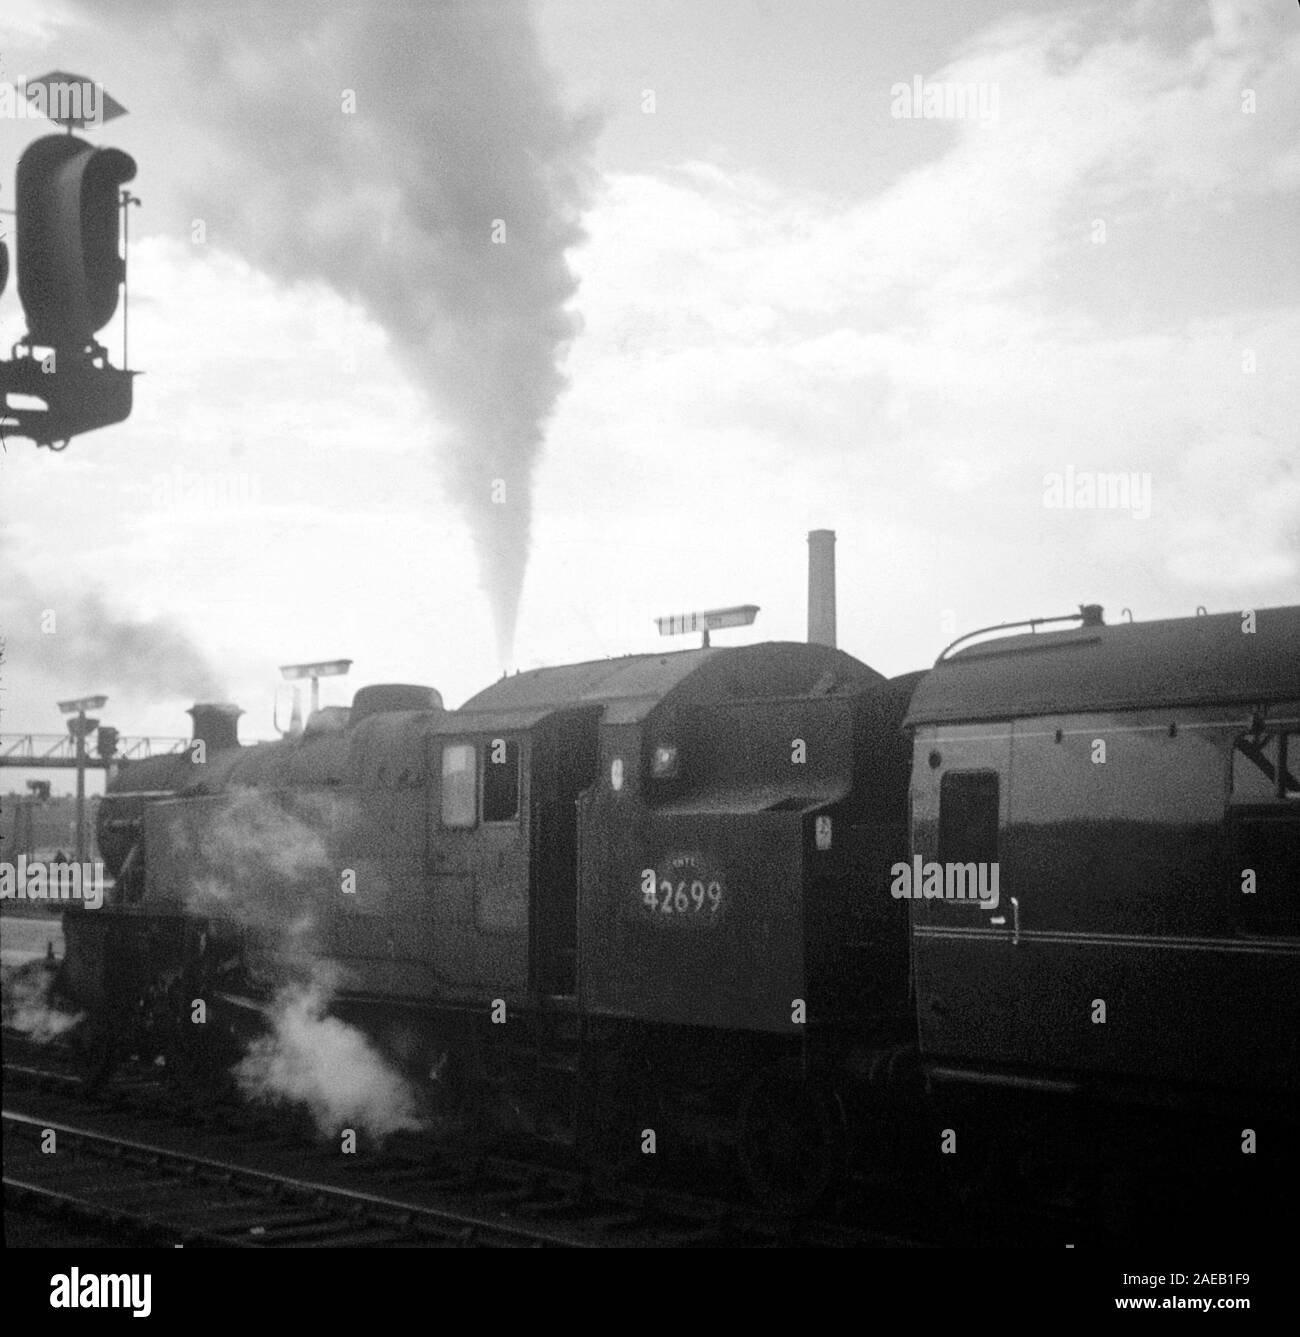 Steam trains running on British railways in 1967, towards the end of main line steam, at Leeds City Station, Northern England, UK Stock Photo